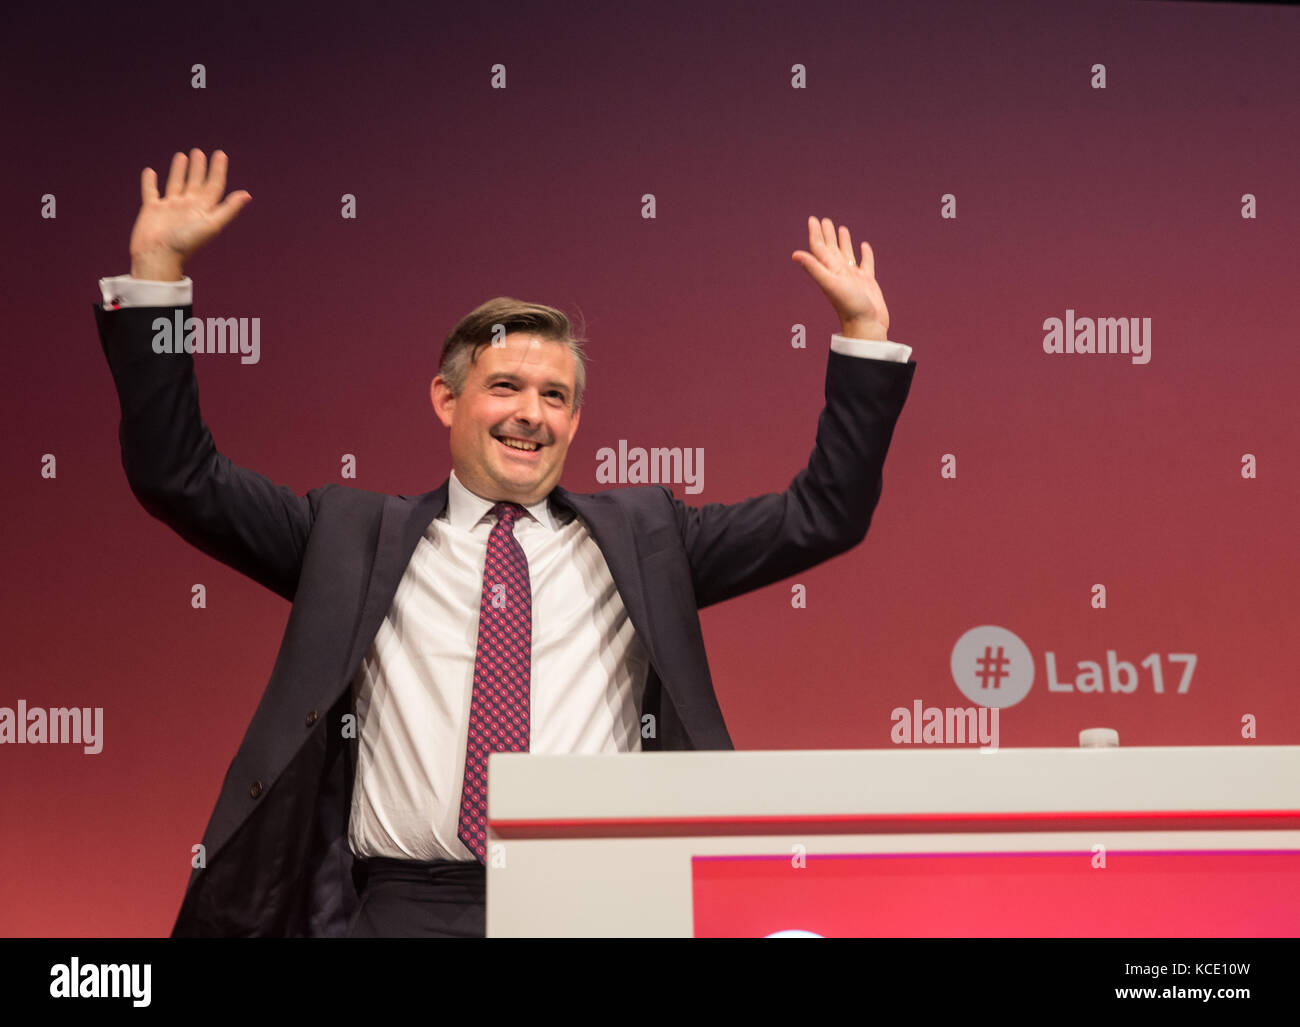 Jon Ashworth, Shadow Secretary of State for Health, waves after he receives a standing ovation for his speech at - Stock Image